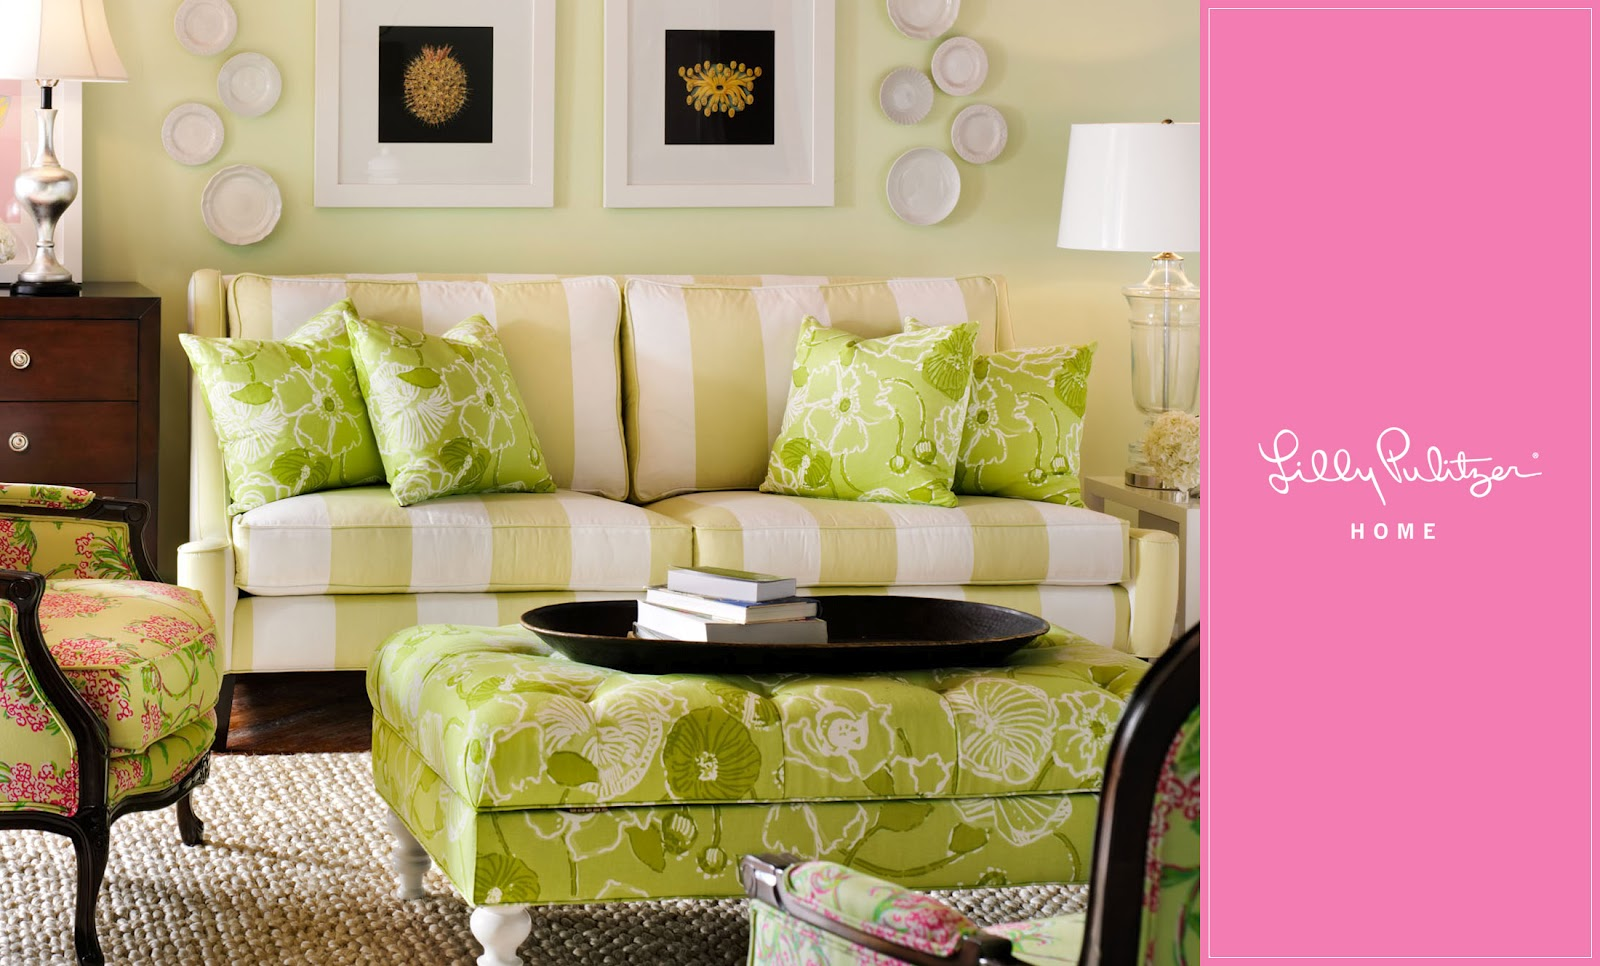 Lilly Pulitzer Furniture Sybaritic Spaces Lilly Pulitzer's Chinoiserie Furniture